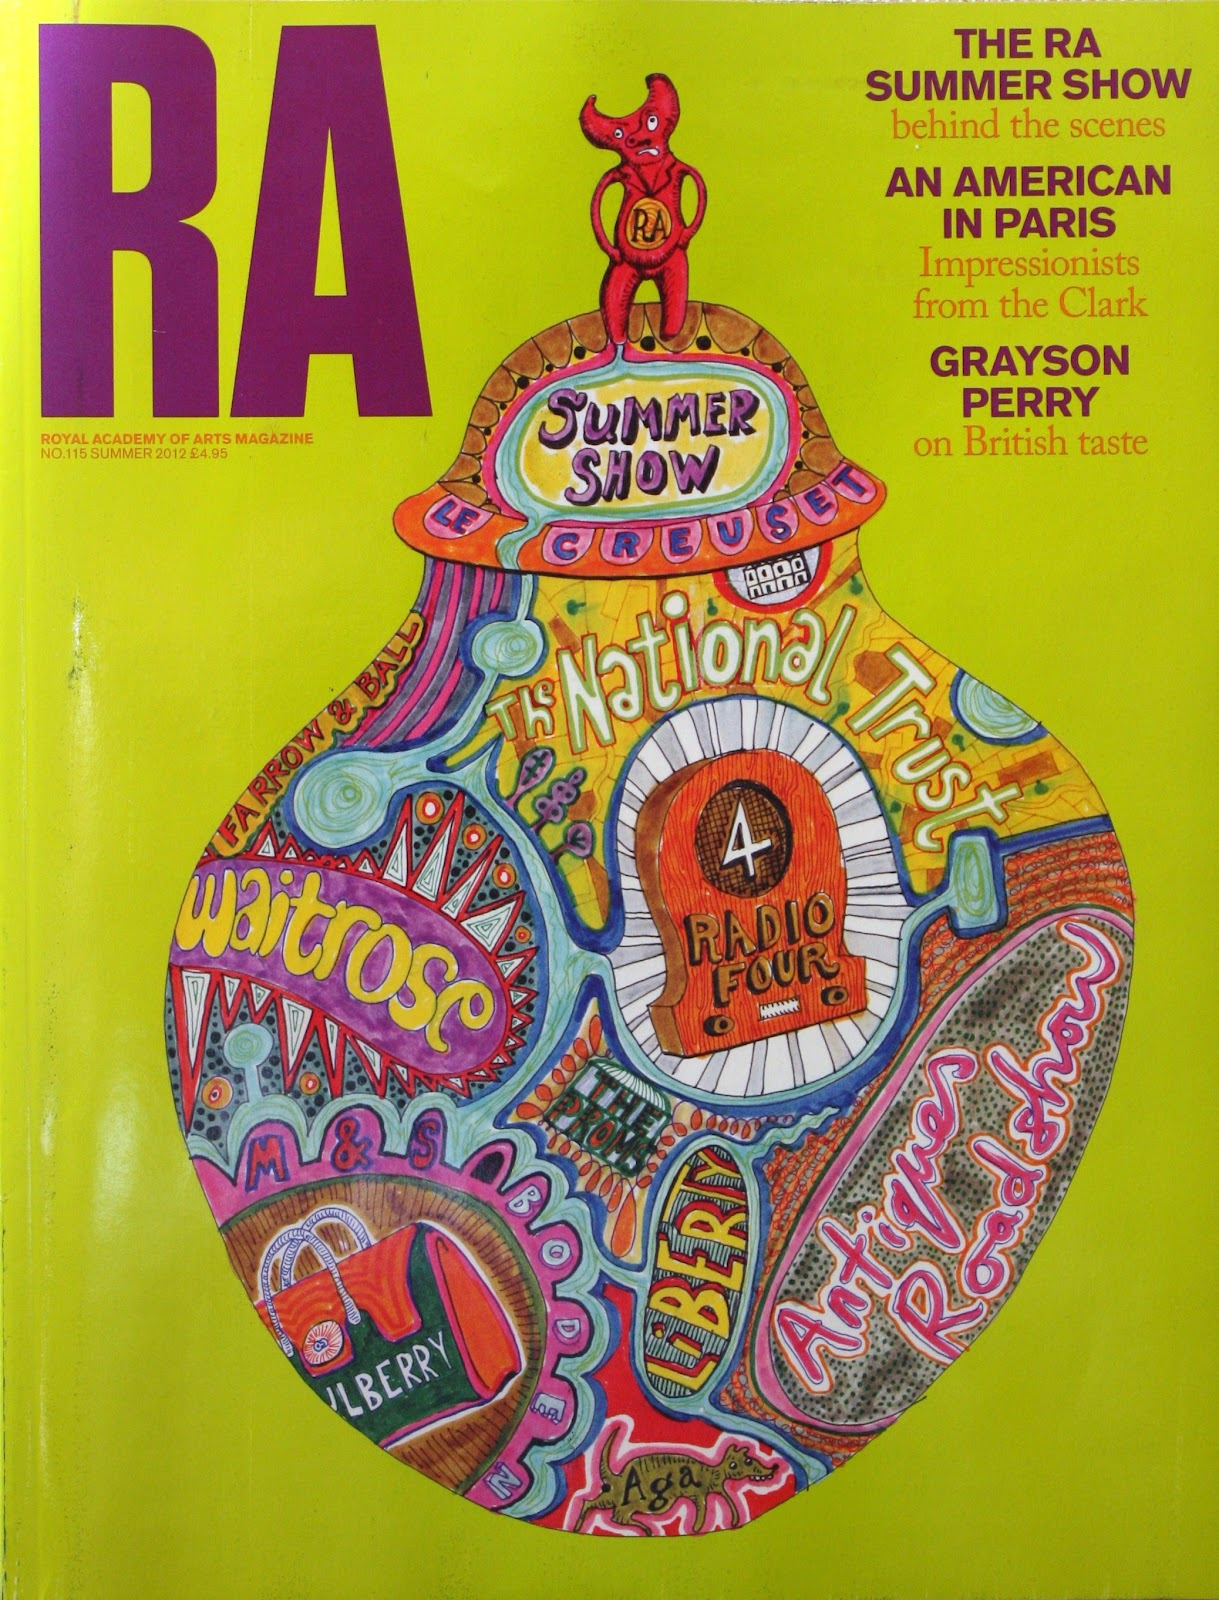 Western Independent: The far side of Grayson Perry RA